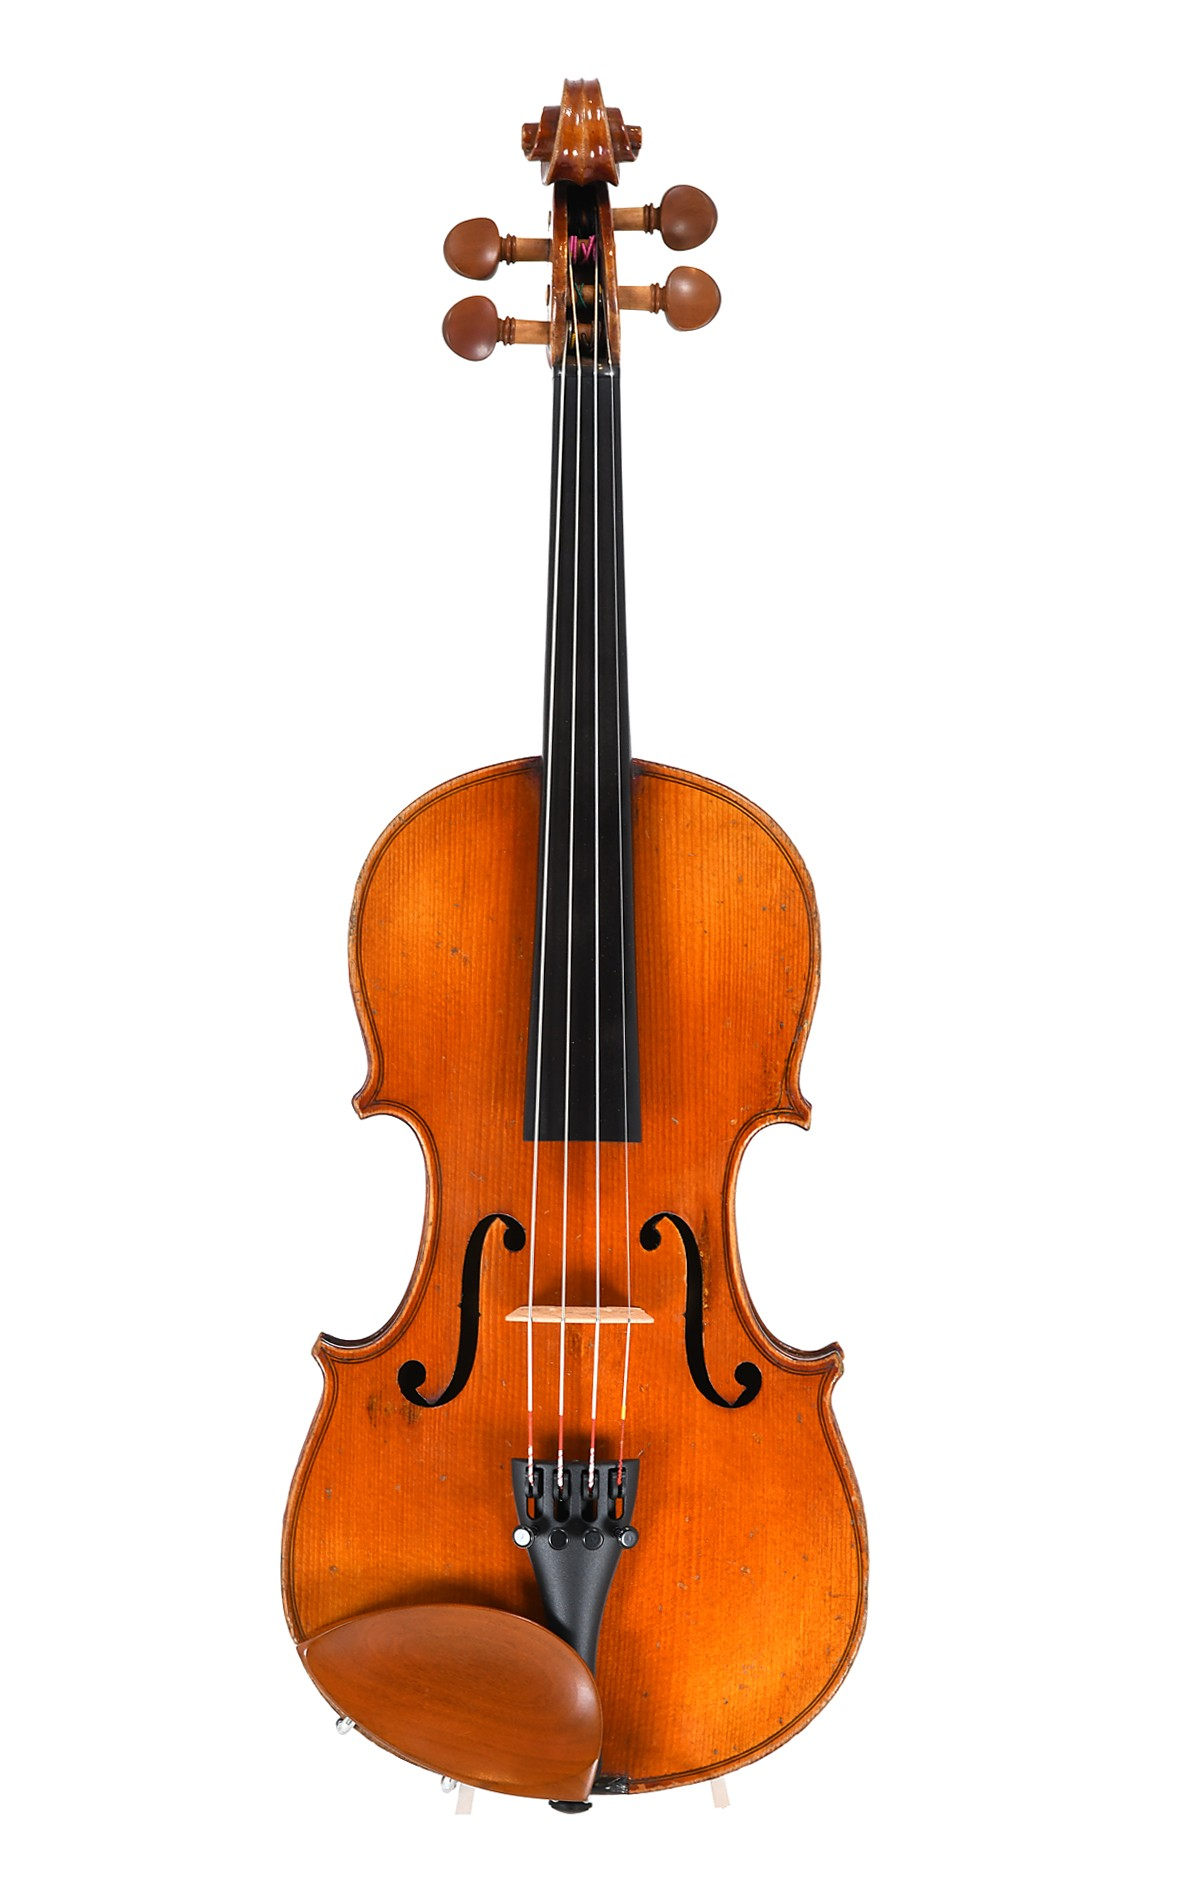 1/2 violin from Mirecourt, ca. 1900 - table